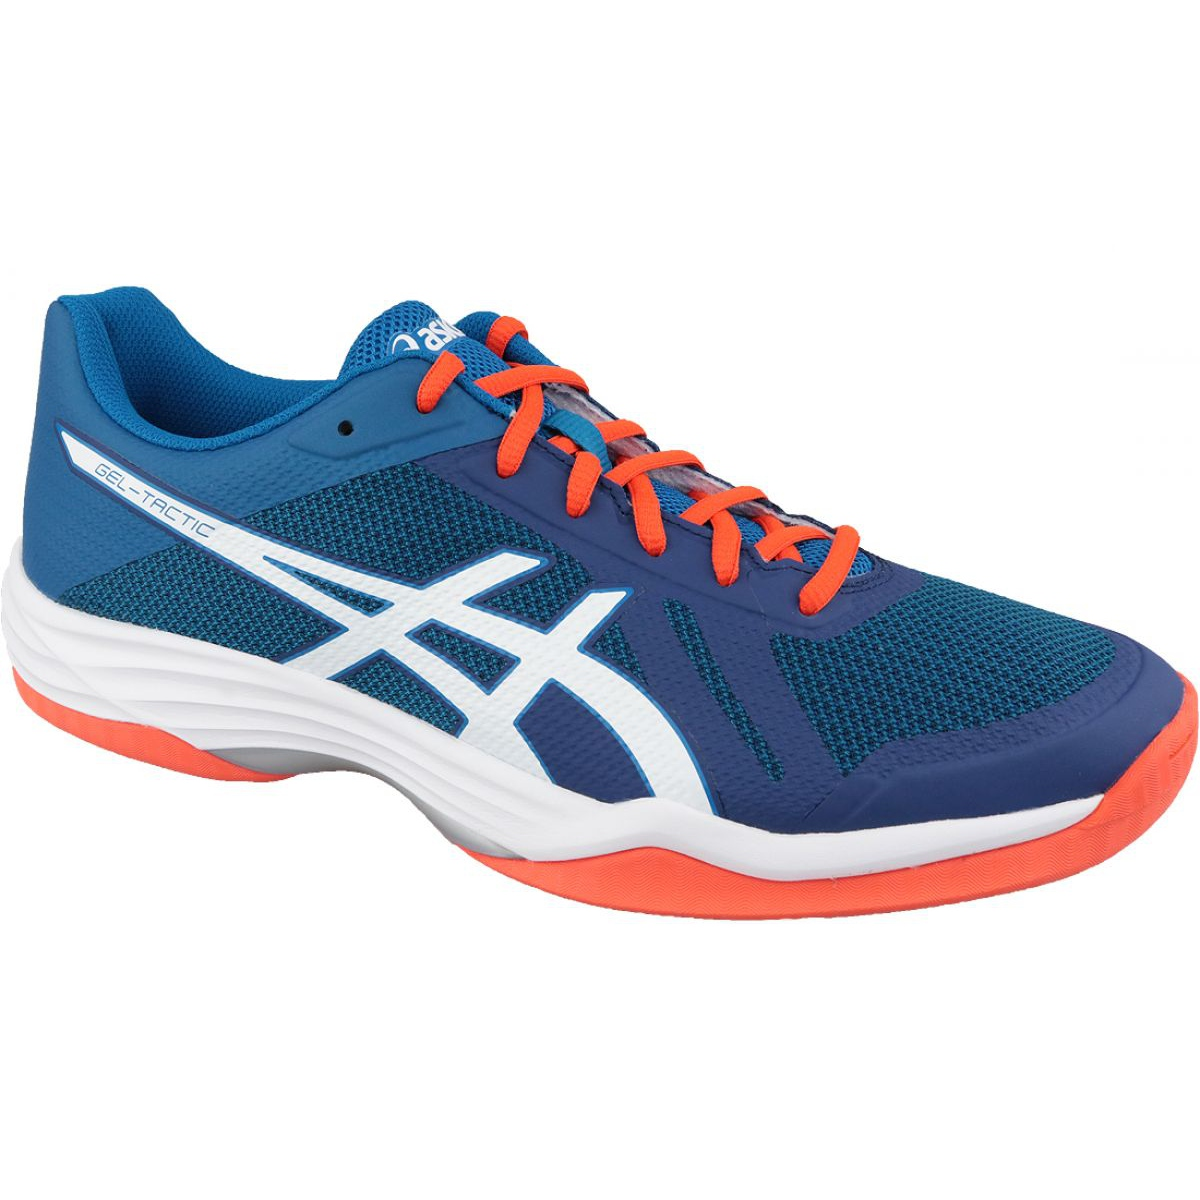 Volleyball shoes Asics Gel-Tactic M